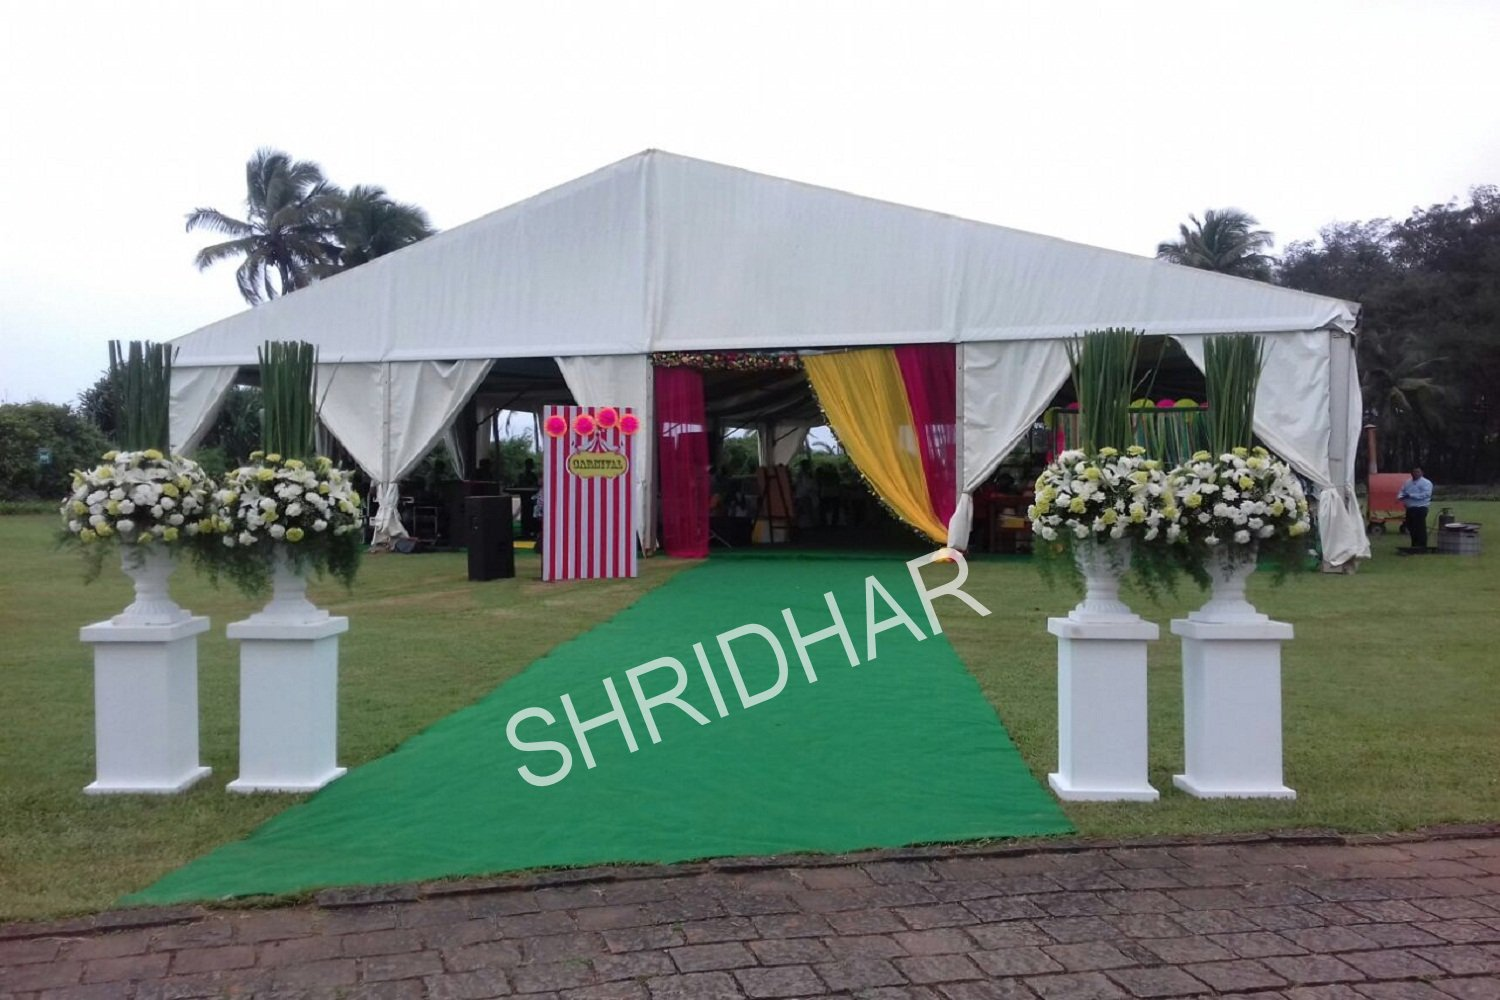 tent houses for rent for weddings and wedding functions from shridhar tent house in bangalore